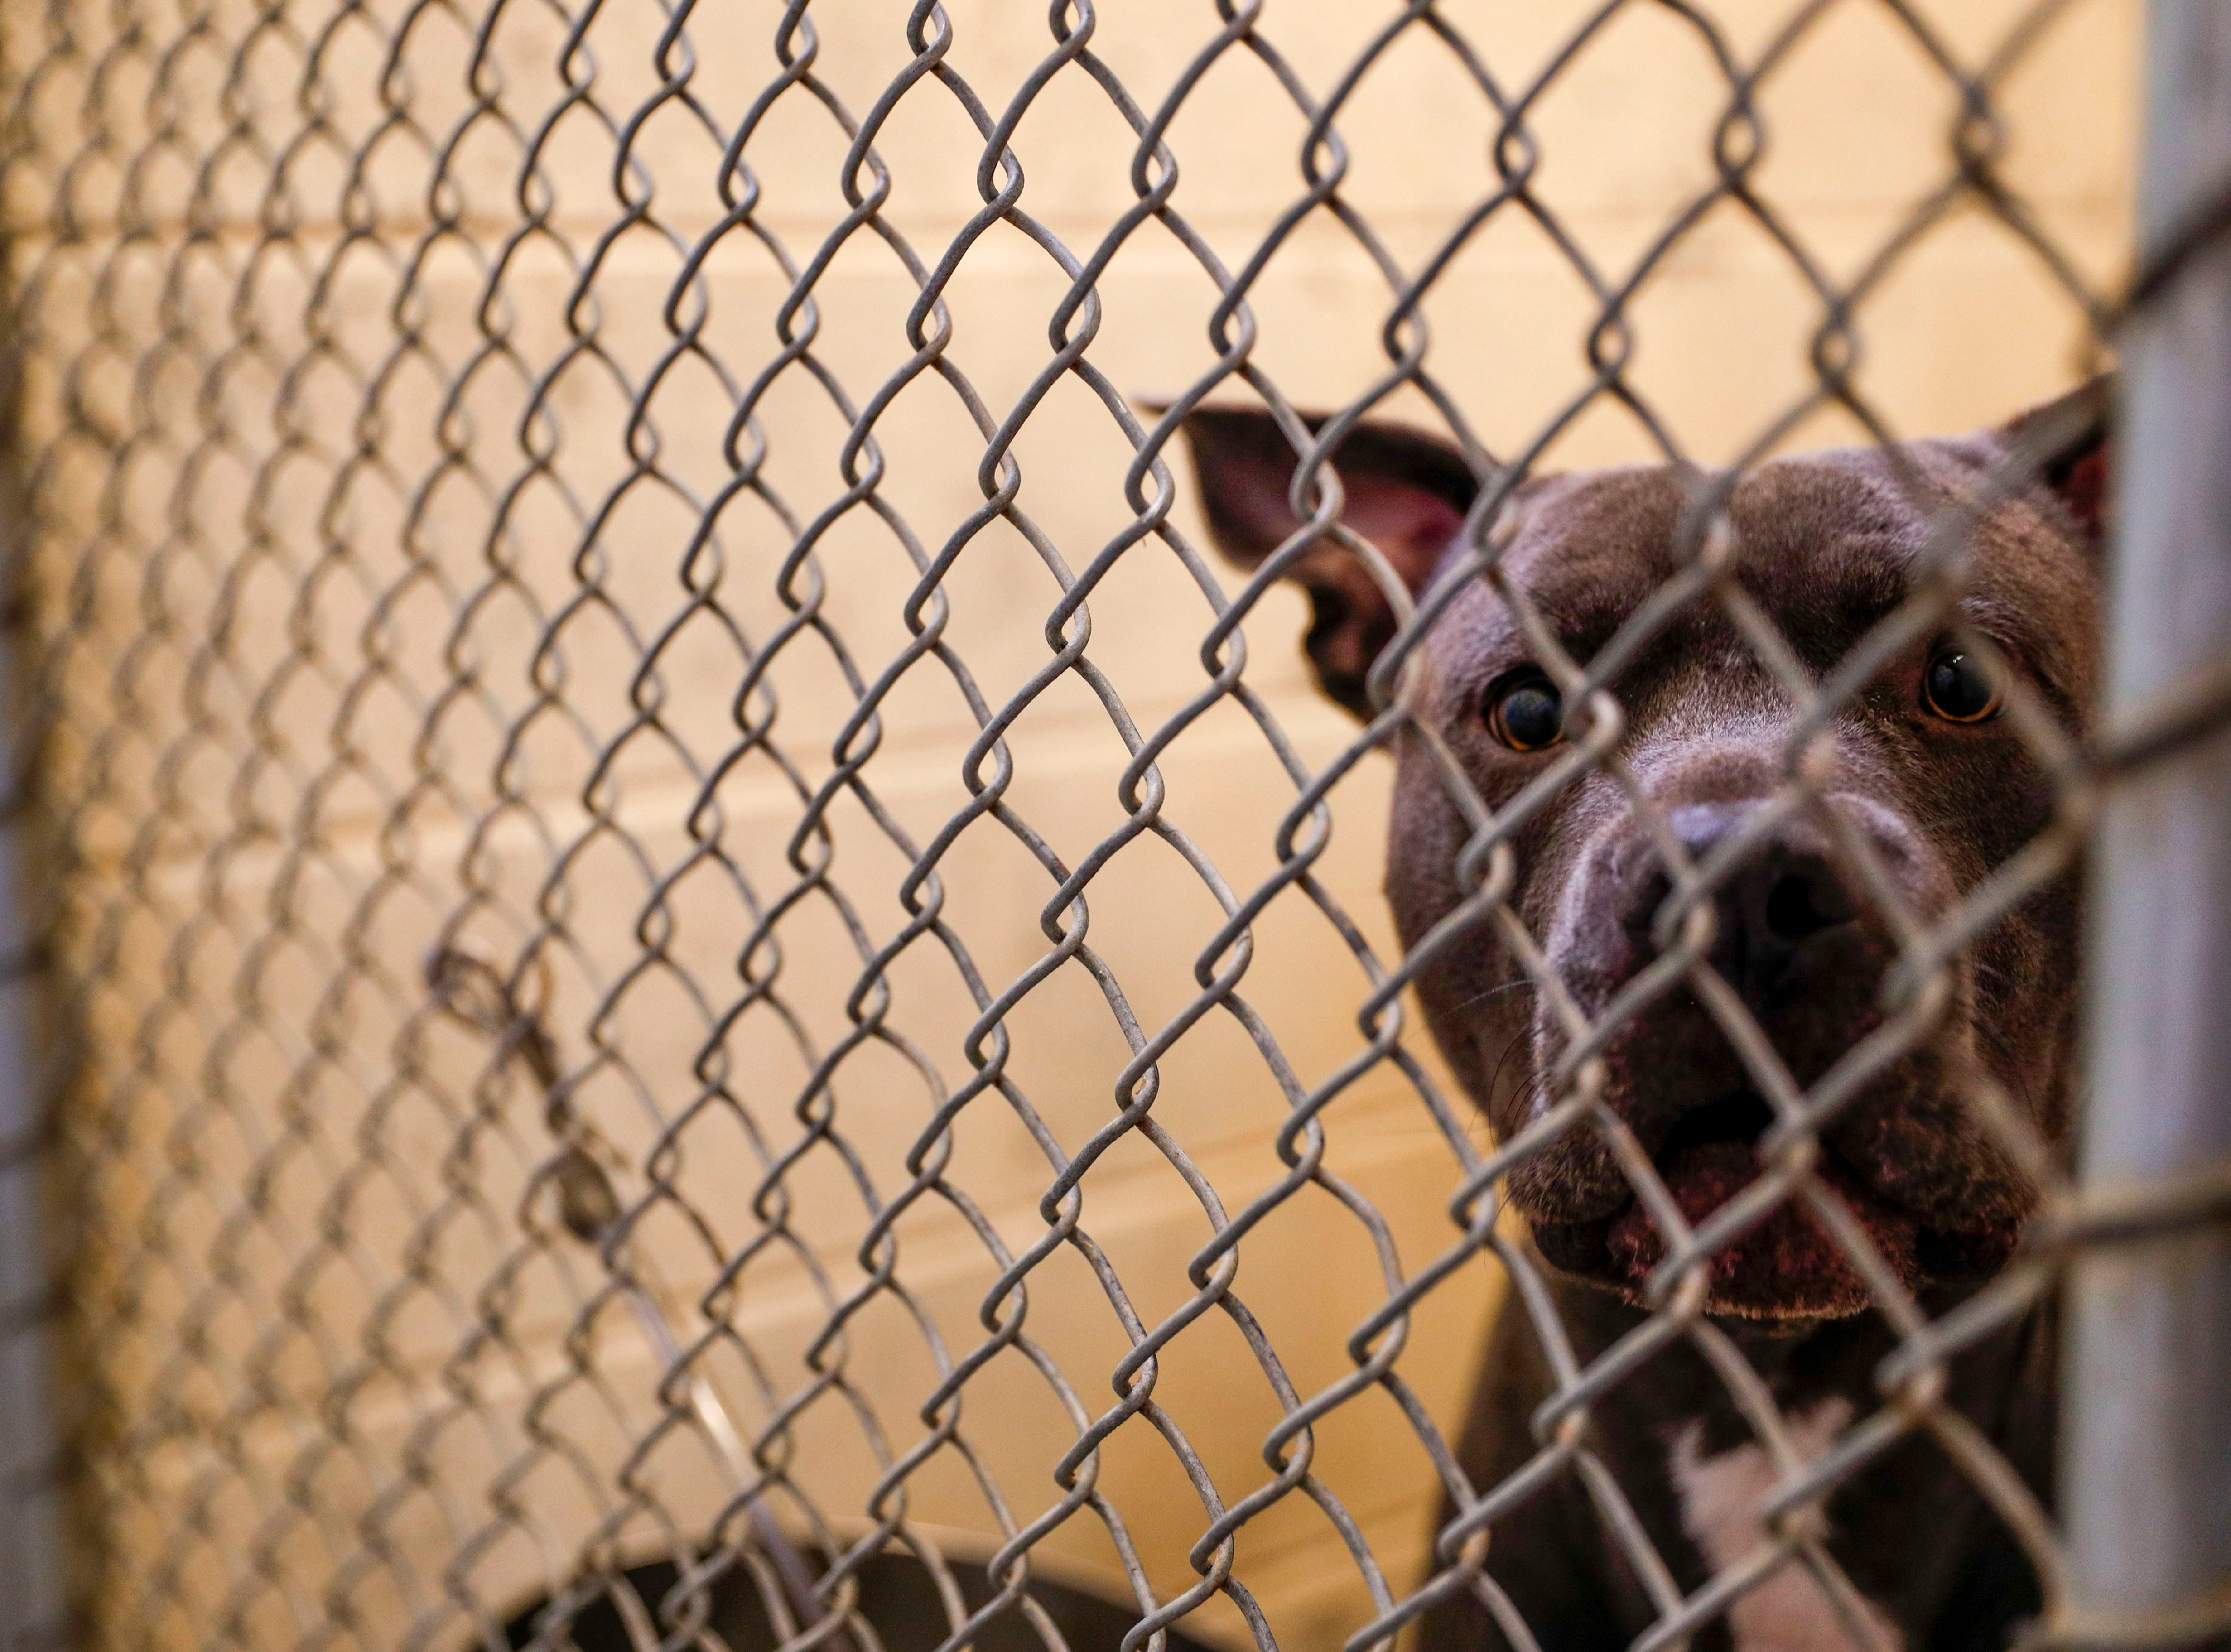 Harp, a pit bull terrier, looks out his kennel while awaiting a new family to take him home at Montgomery County Animal Care and Control in Clarksville, Tenn., on Wednesday, March 13, 2019.